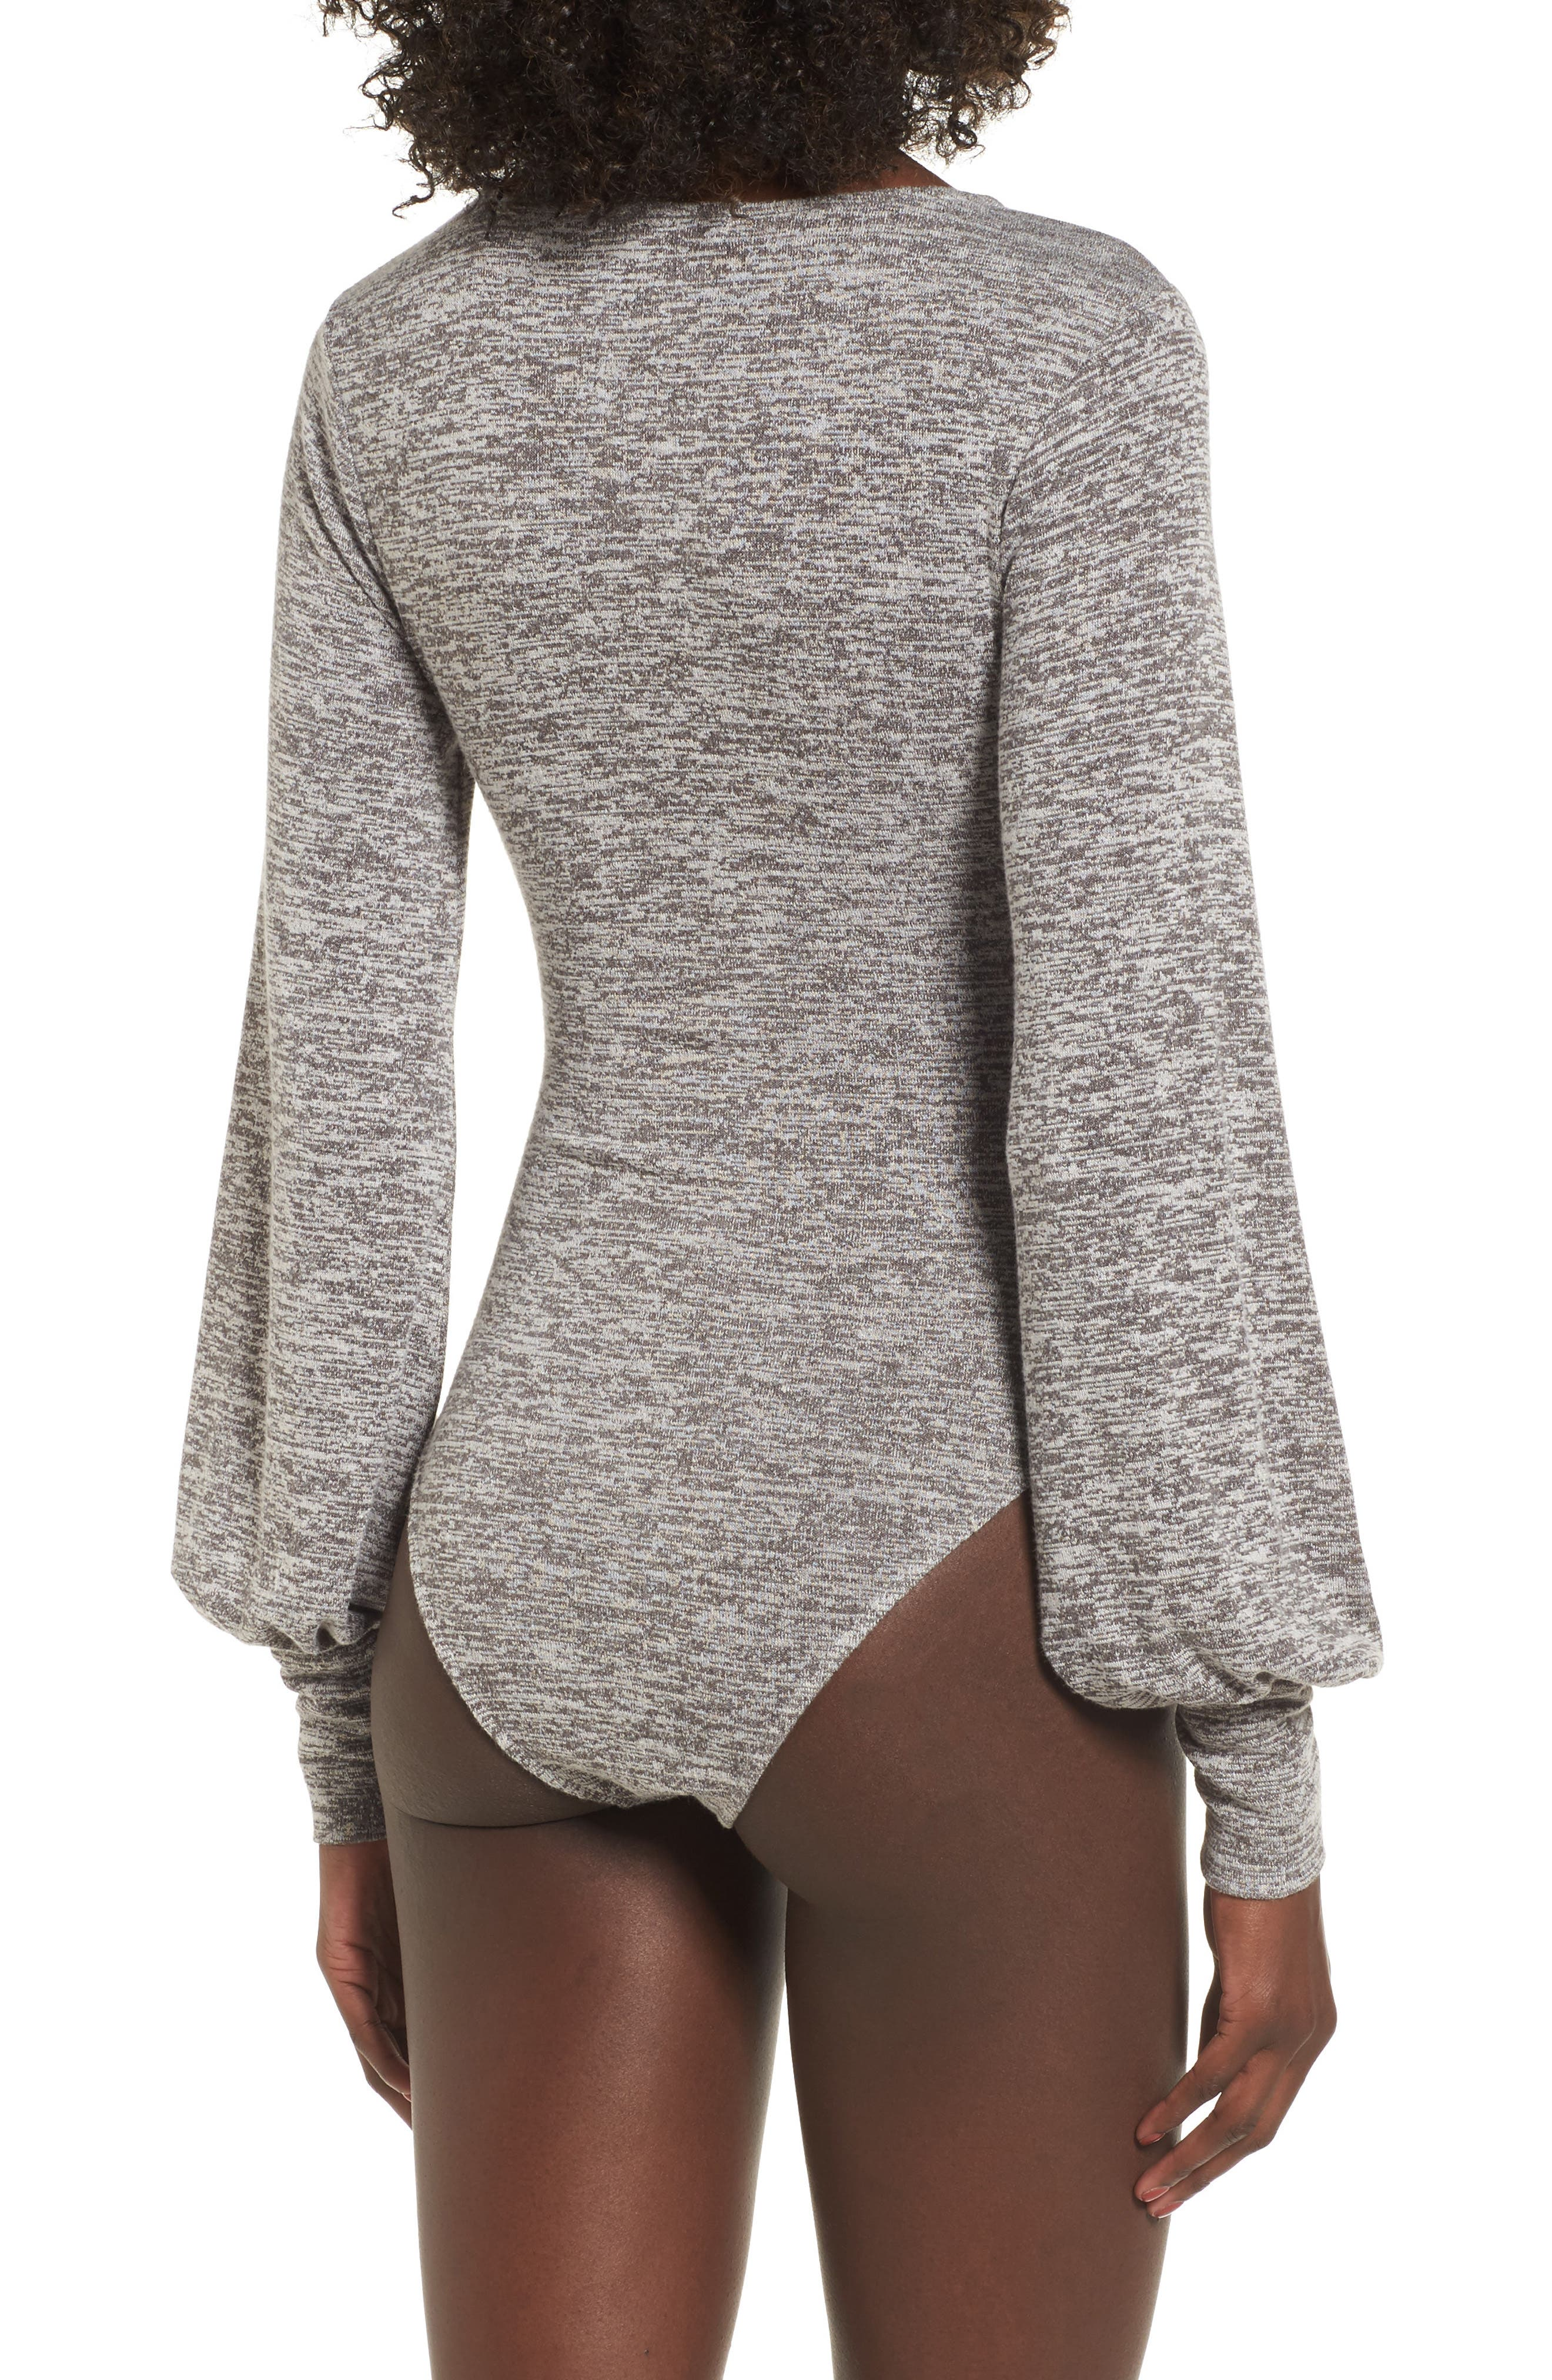 Ruched Bodysuit,                             Alternate thumbnail 2, color,                             Grey Cloudy Heather